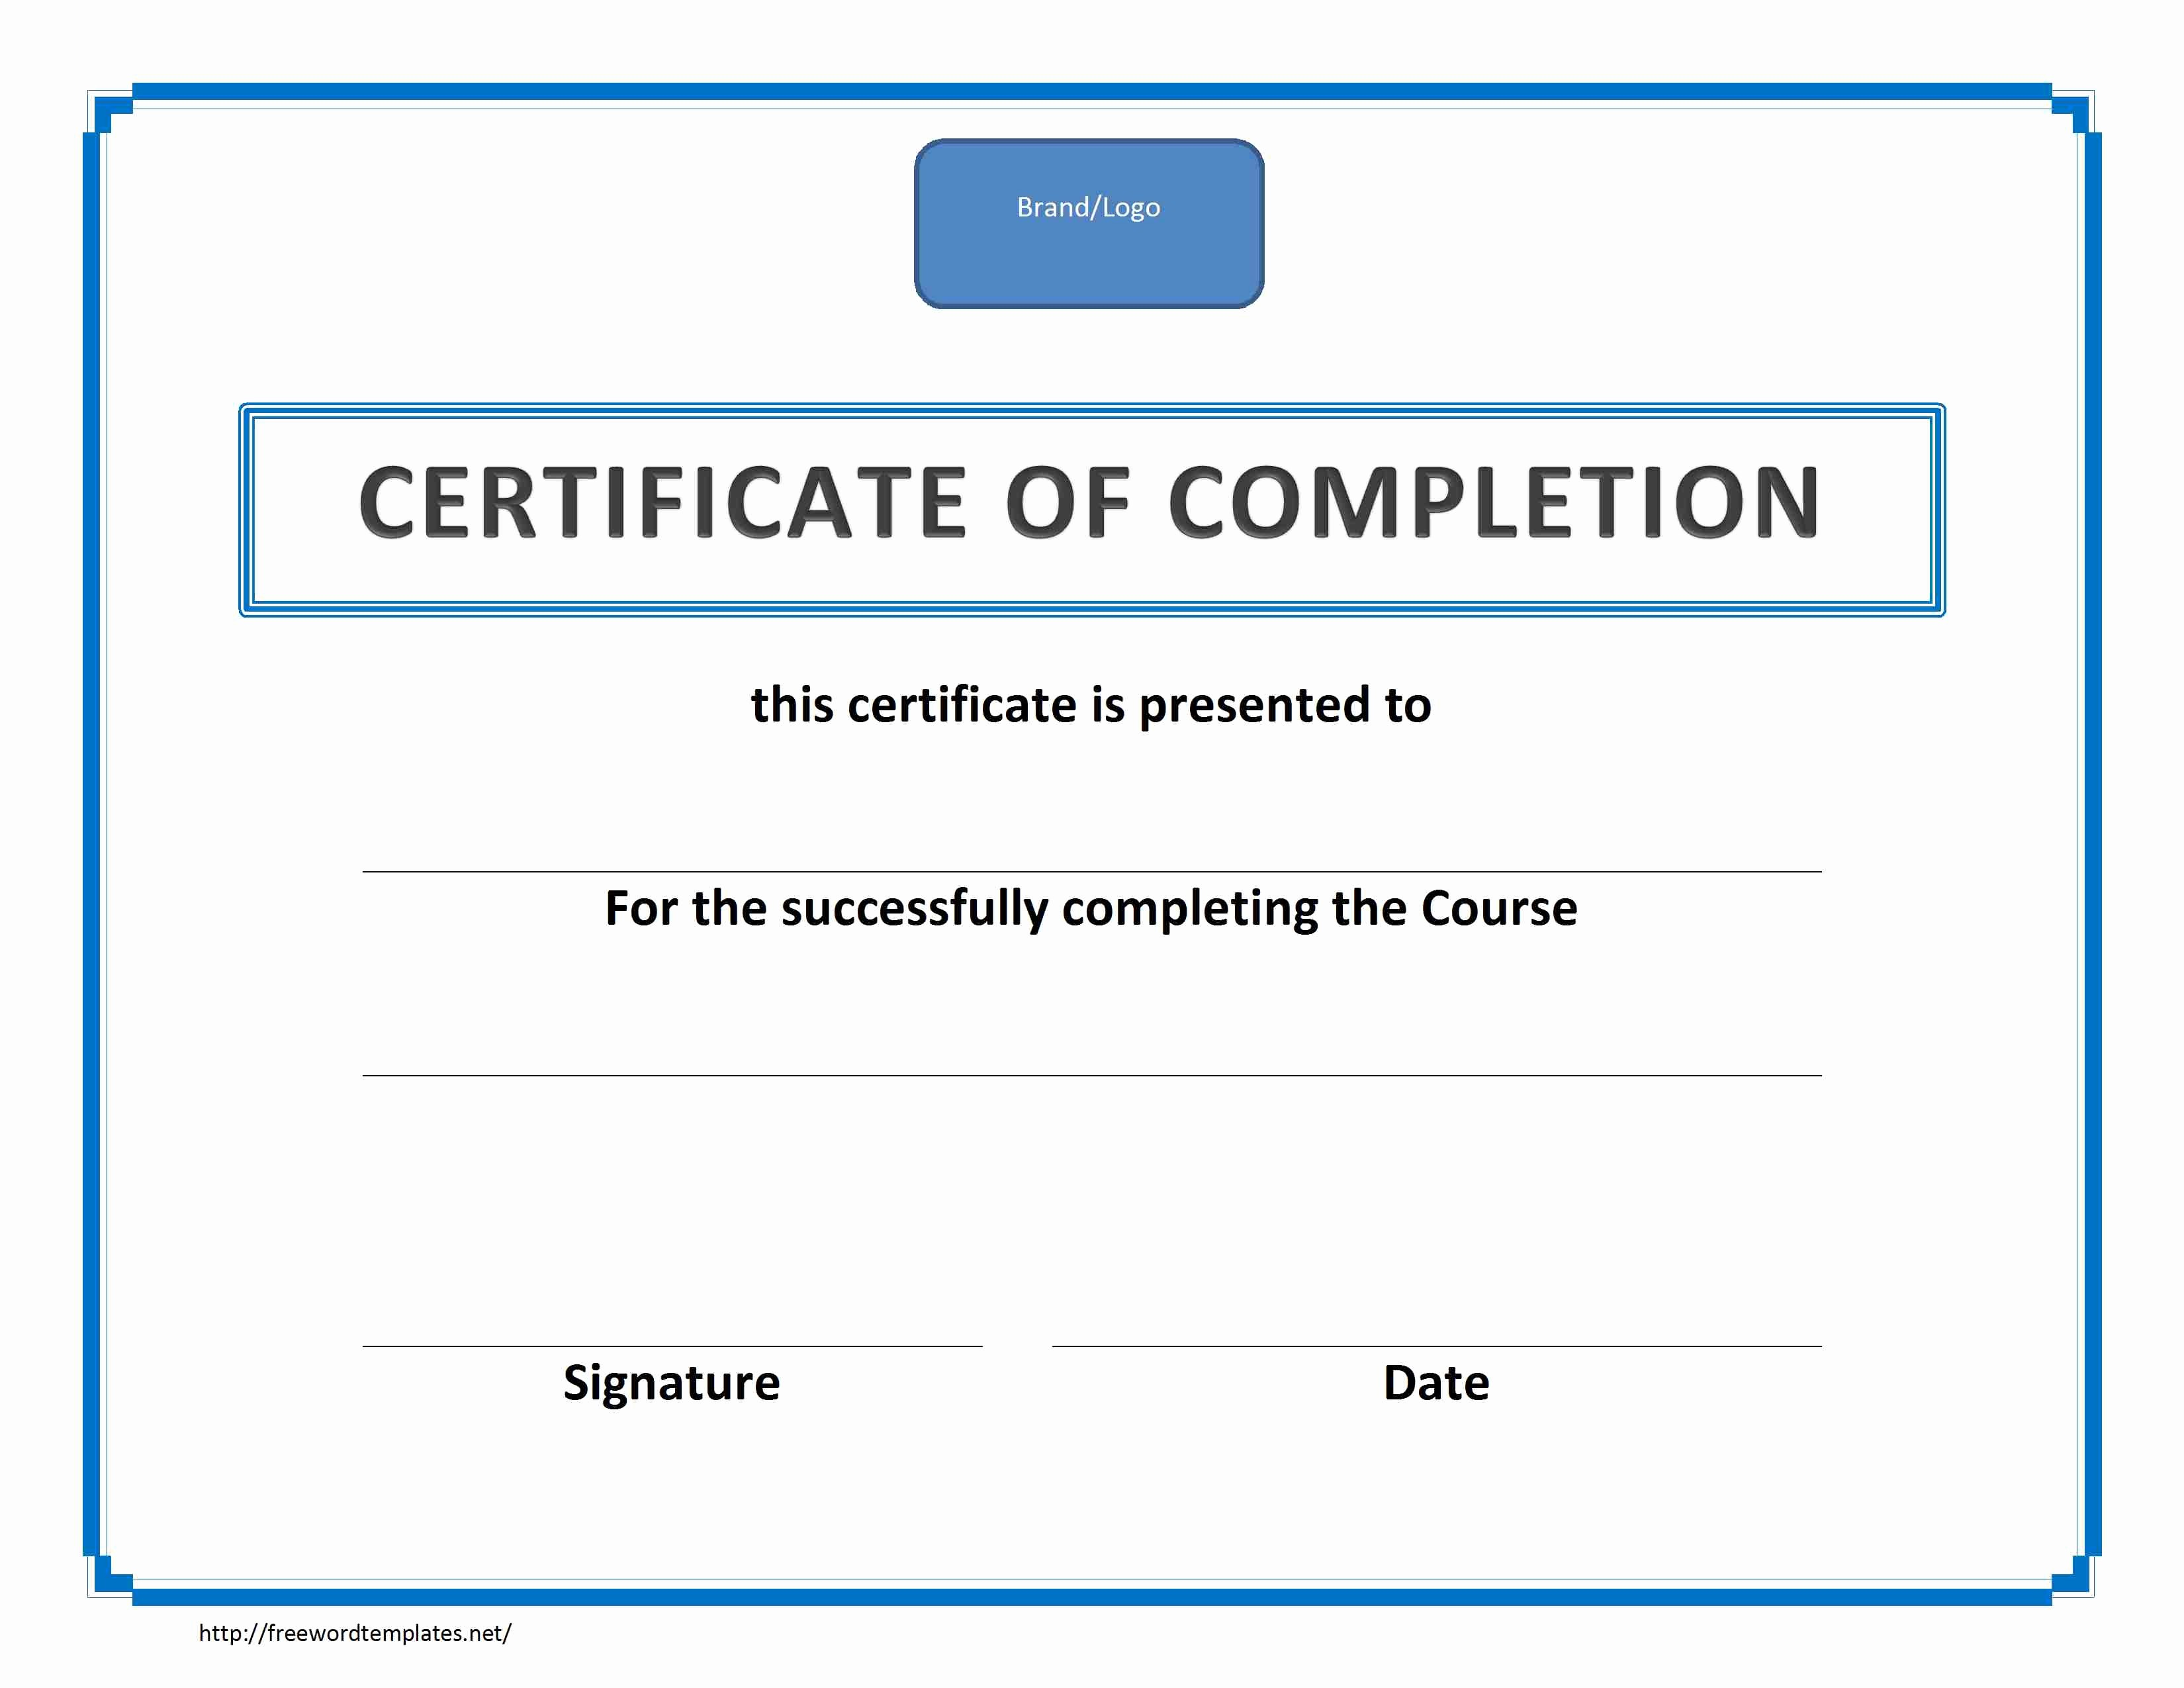 Certificate Of Completion Of Training Awesome Training Certificate Of Pletion